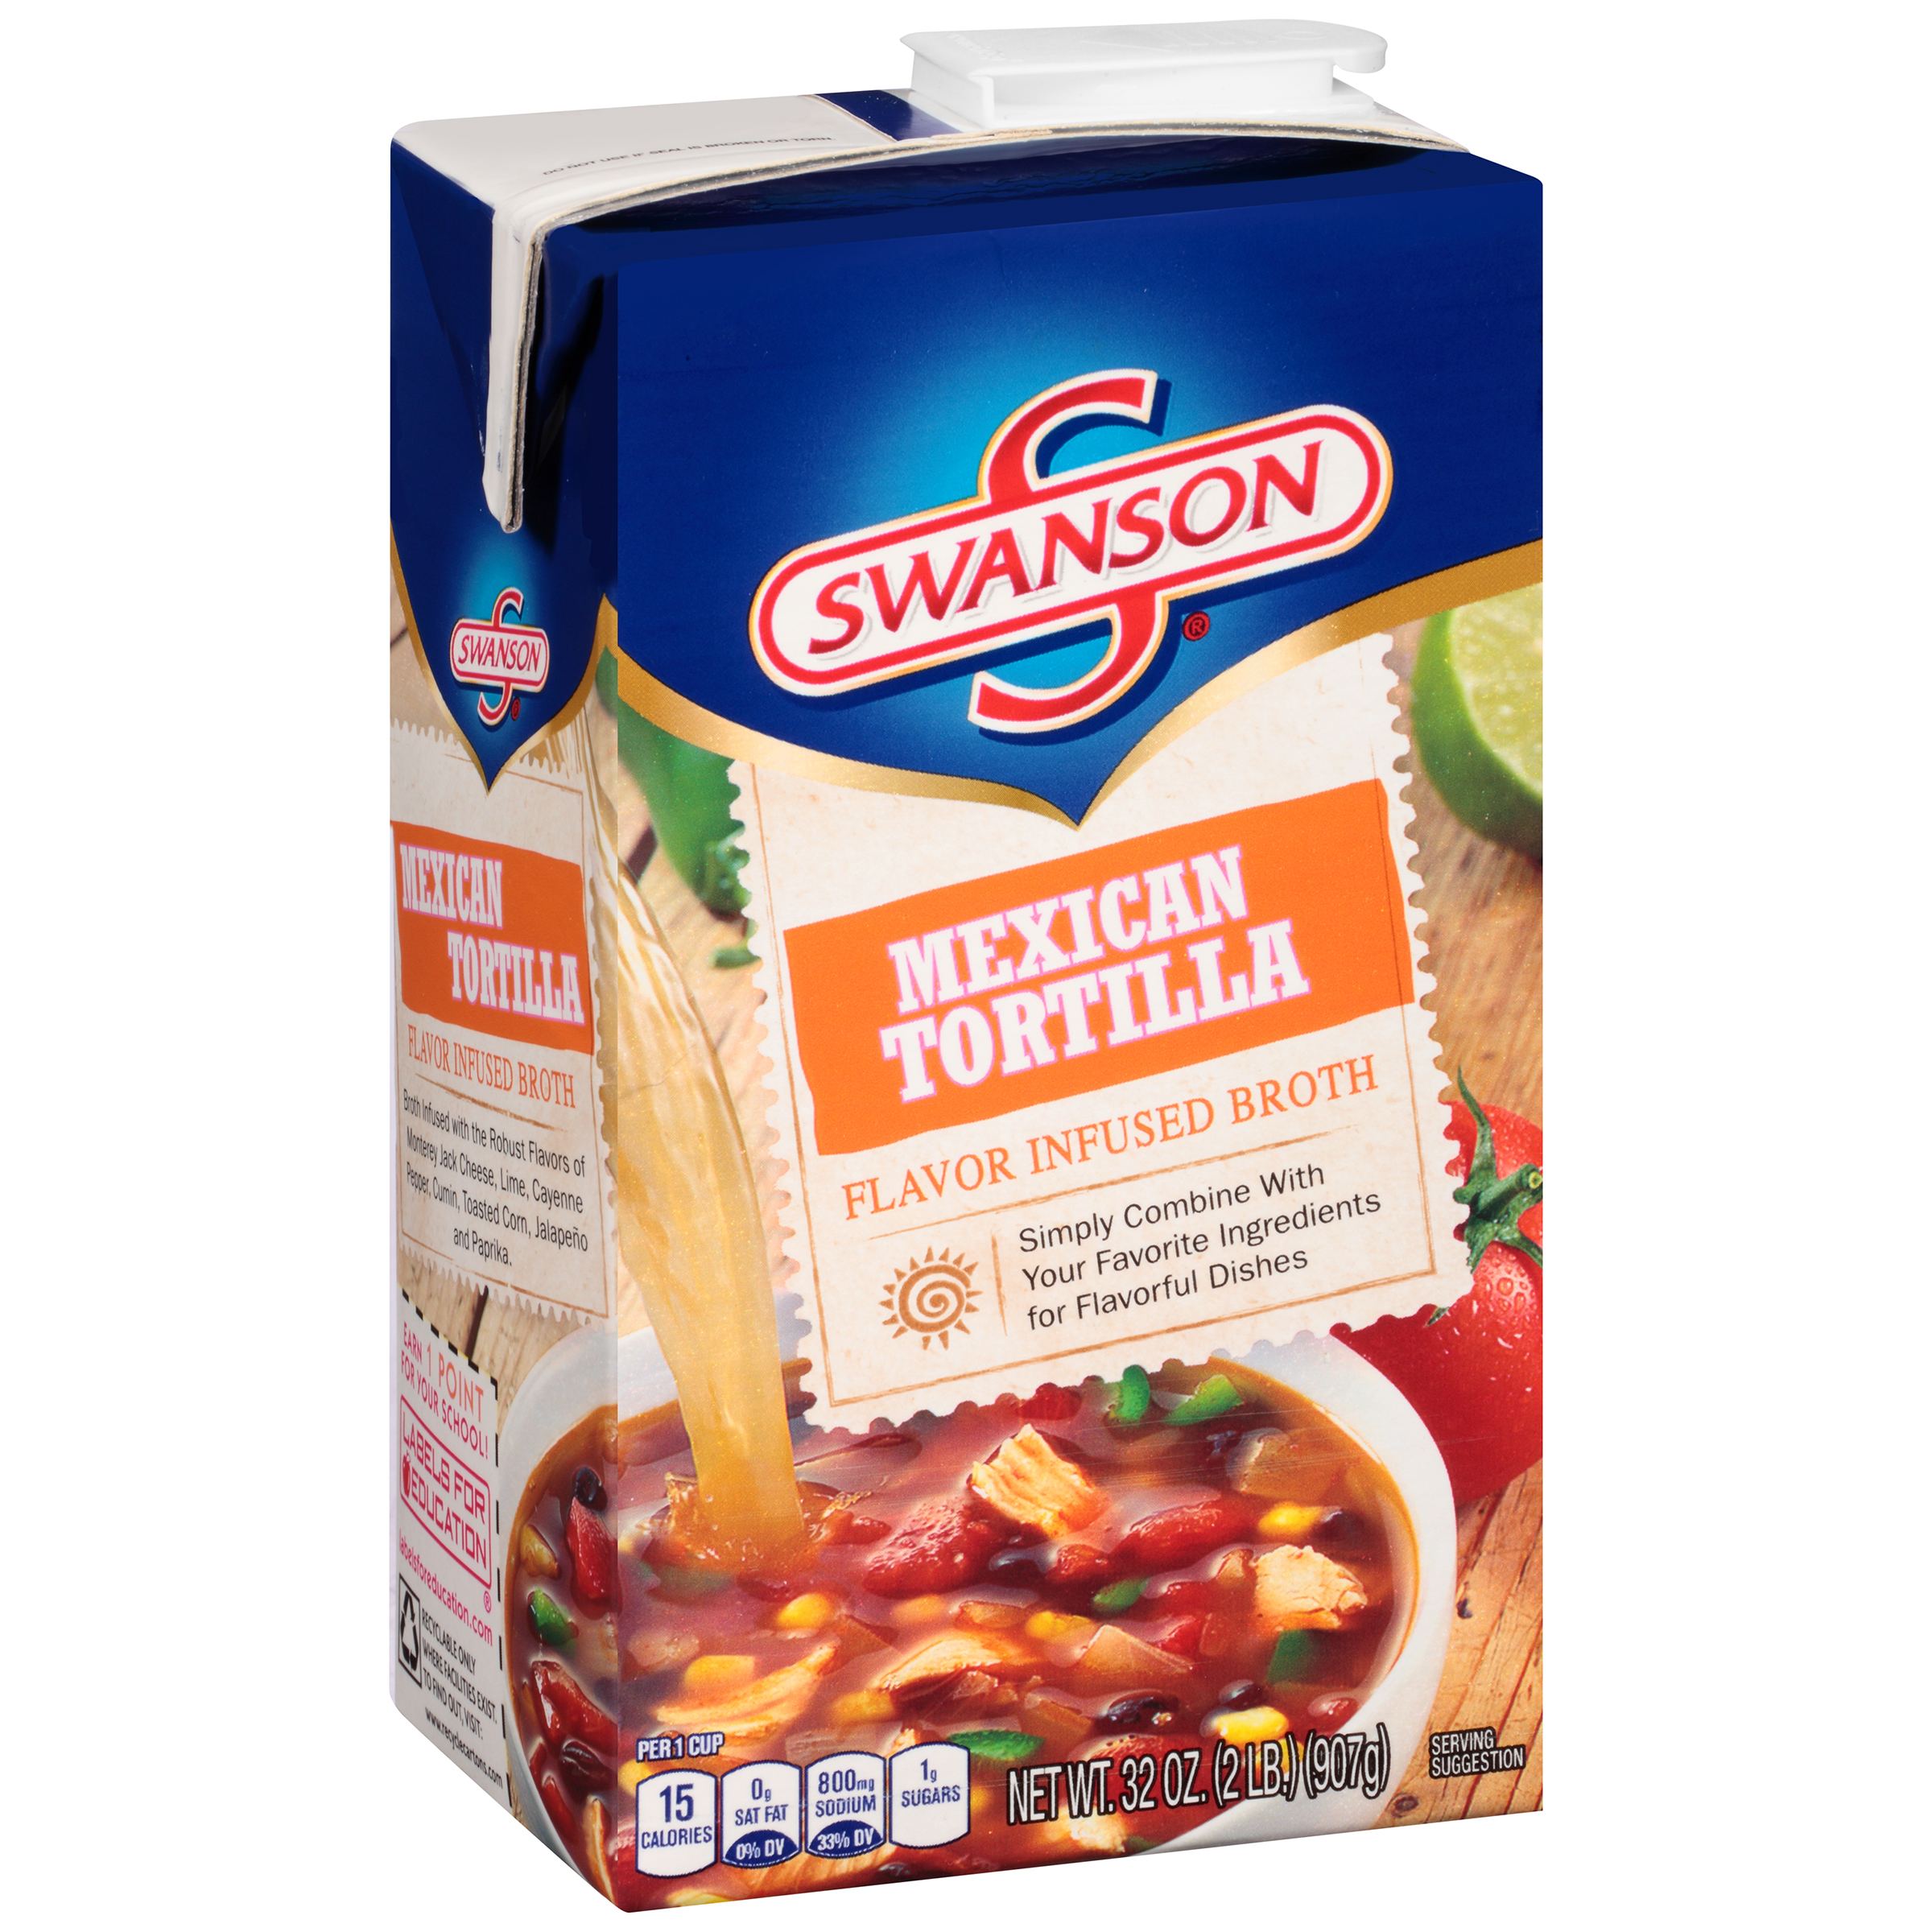 Swanson Mexican Tortilla Flavor Infused Broth 32oz